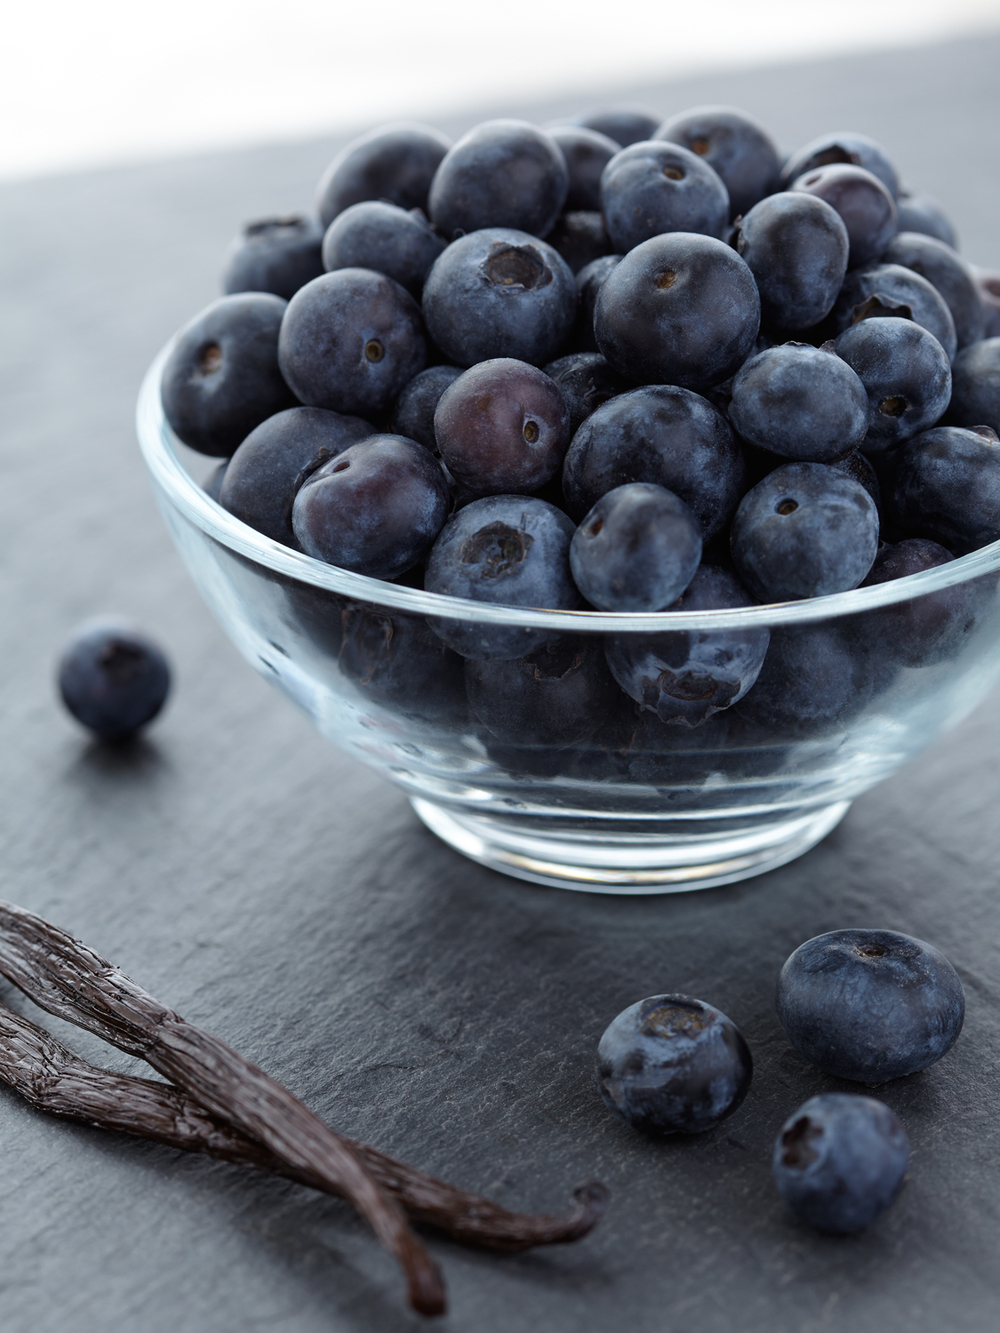 blueberries_041.jpg